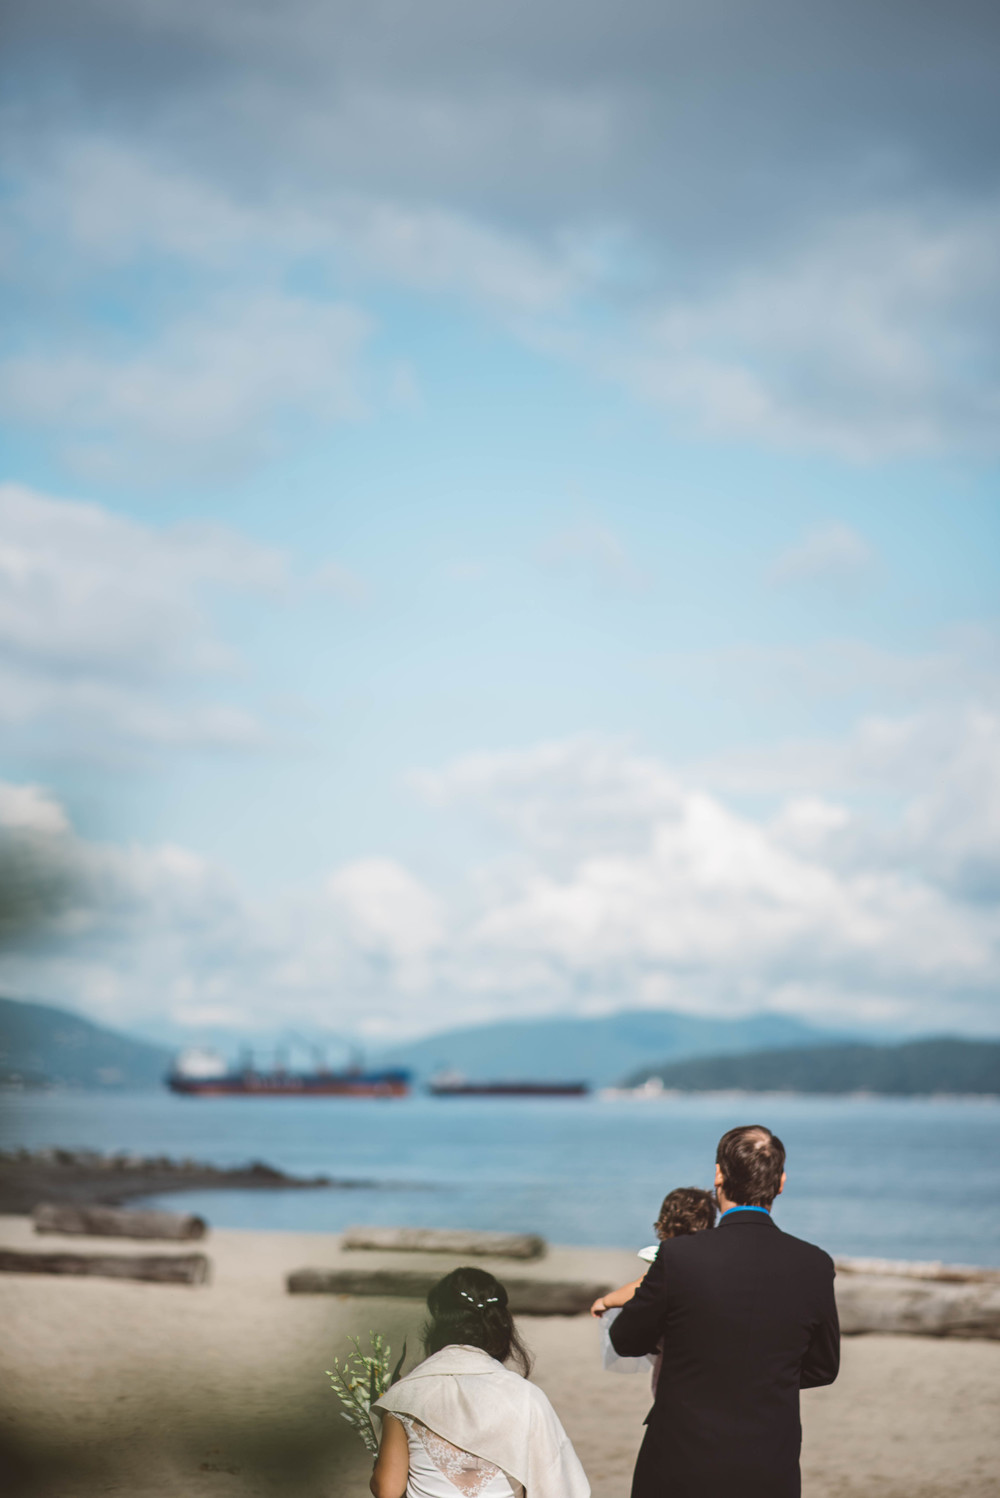 Ronette and Hugo Beach Elopement Wedding Vancouver Spanish Banks by Jo+Bo Photography Destination Vancouver Thailand Wedding Photographer (135).jpg